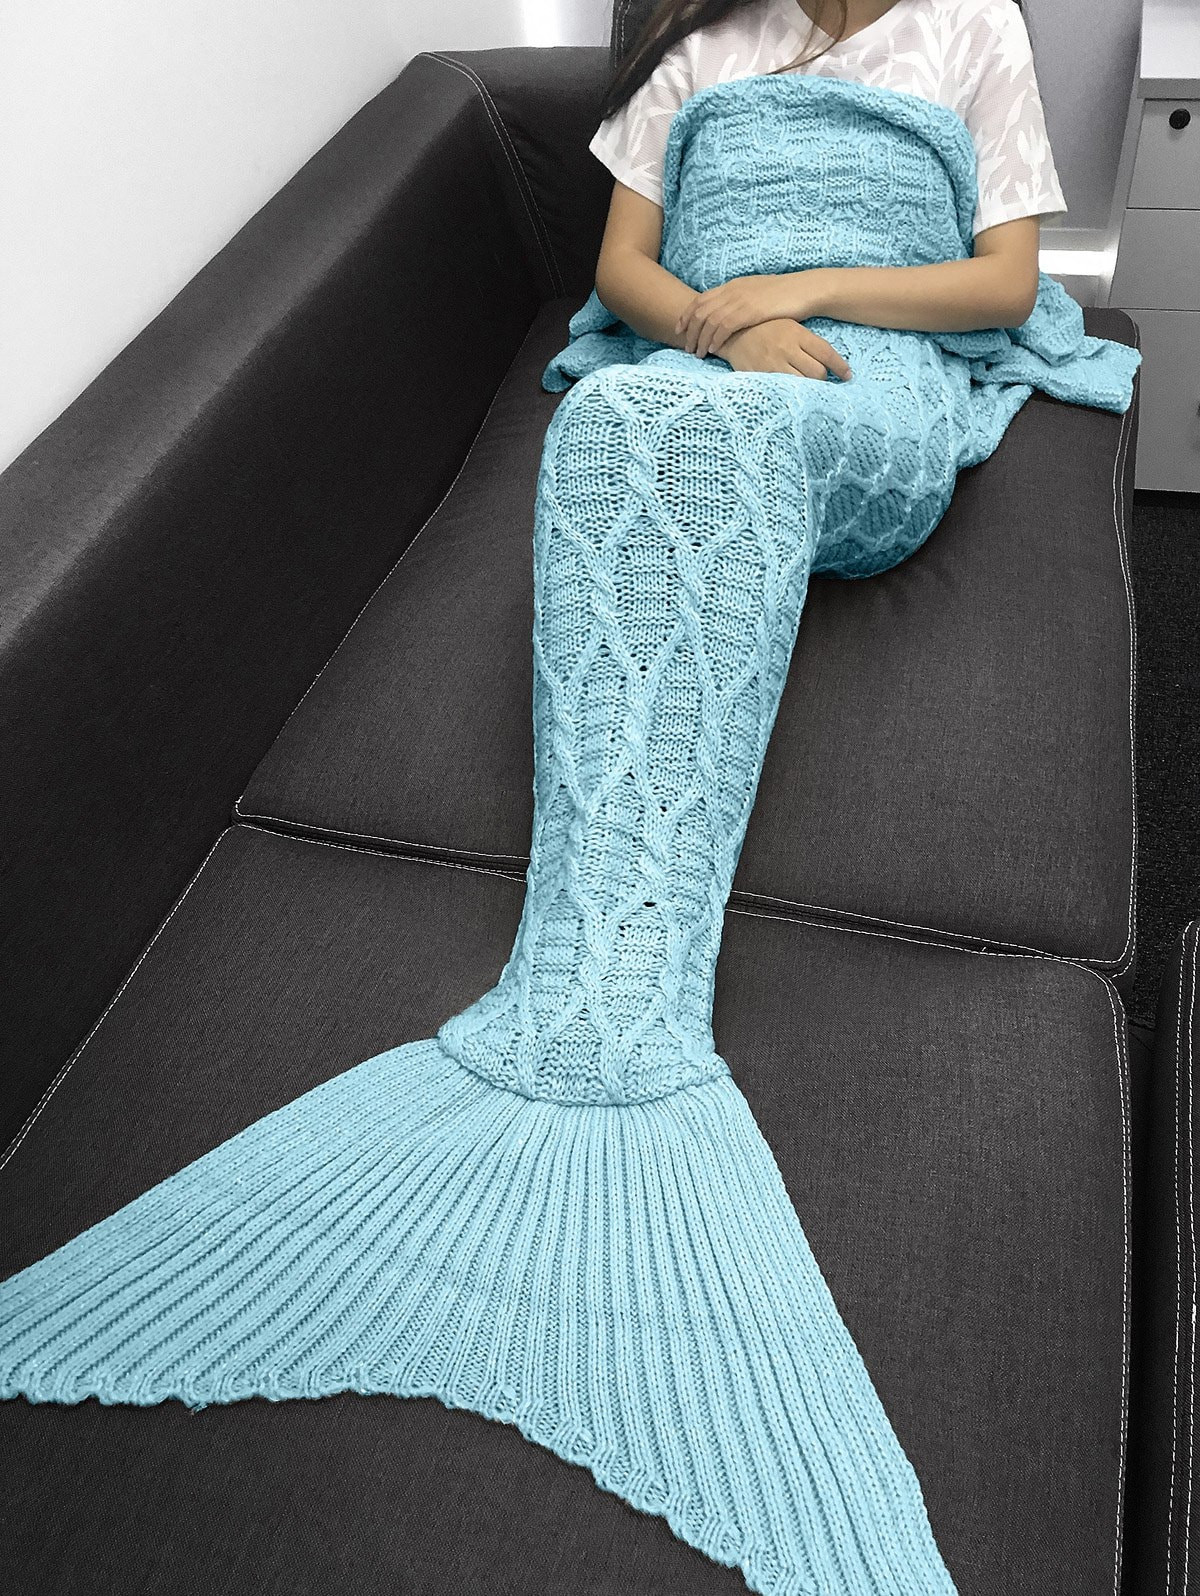 solid color crochet knitting geometric pattern mermaid tail design blanket product